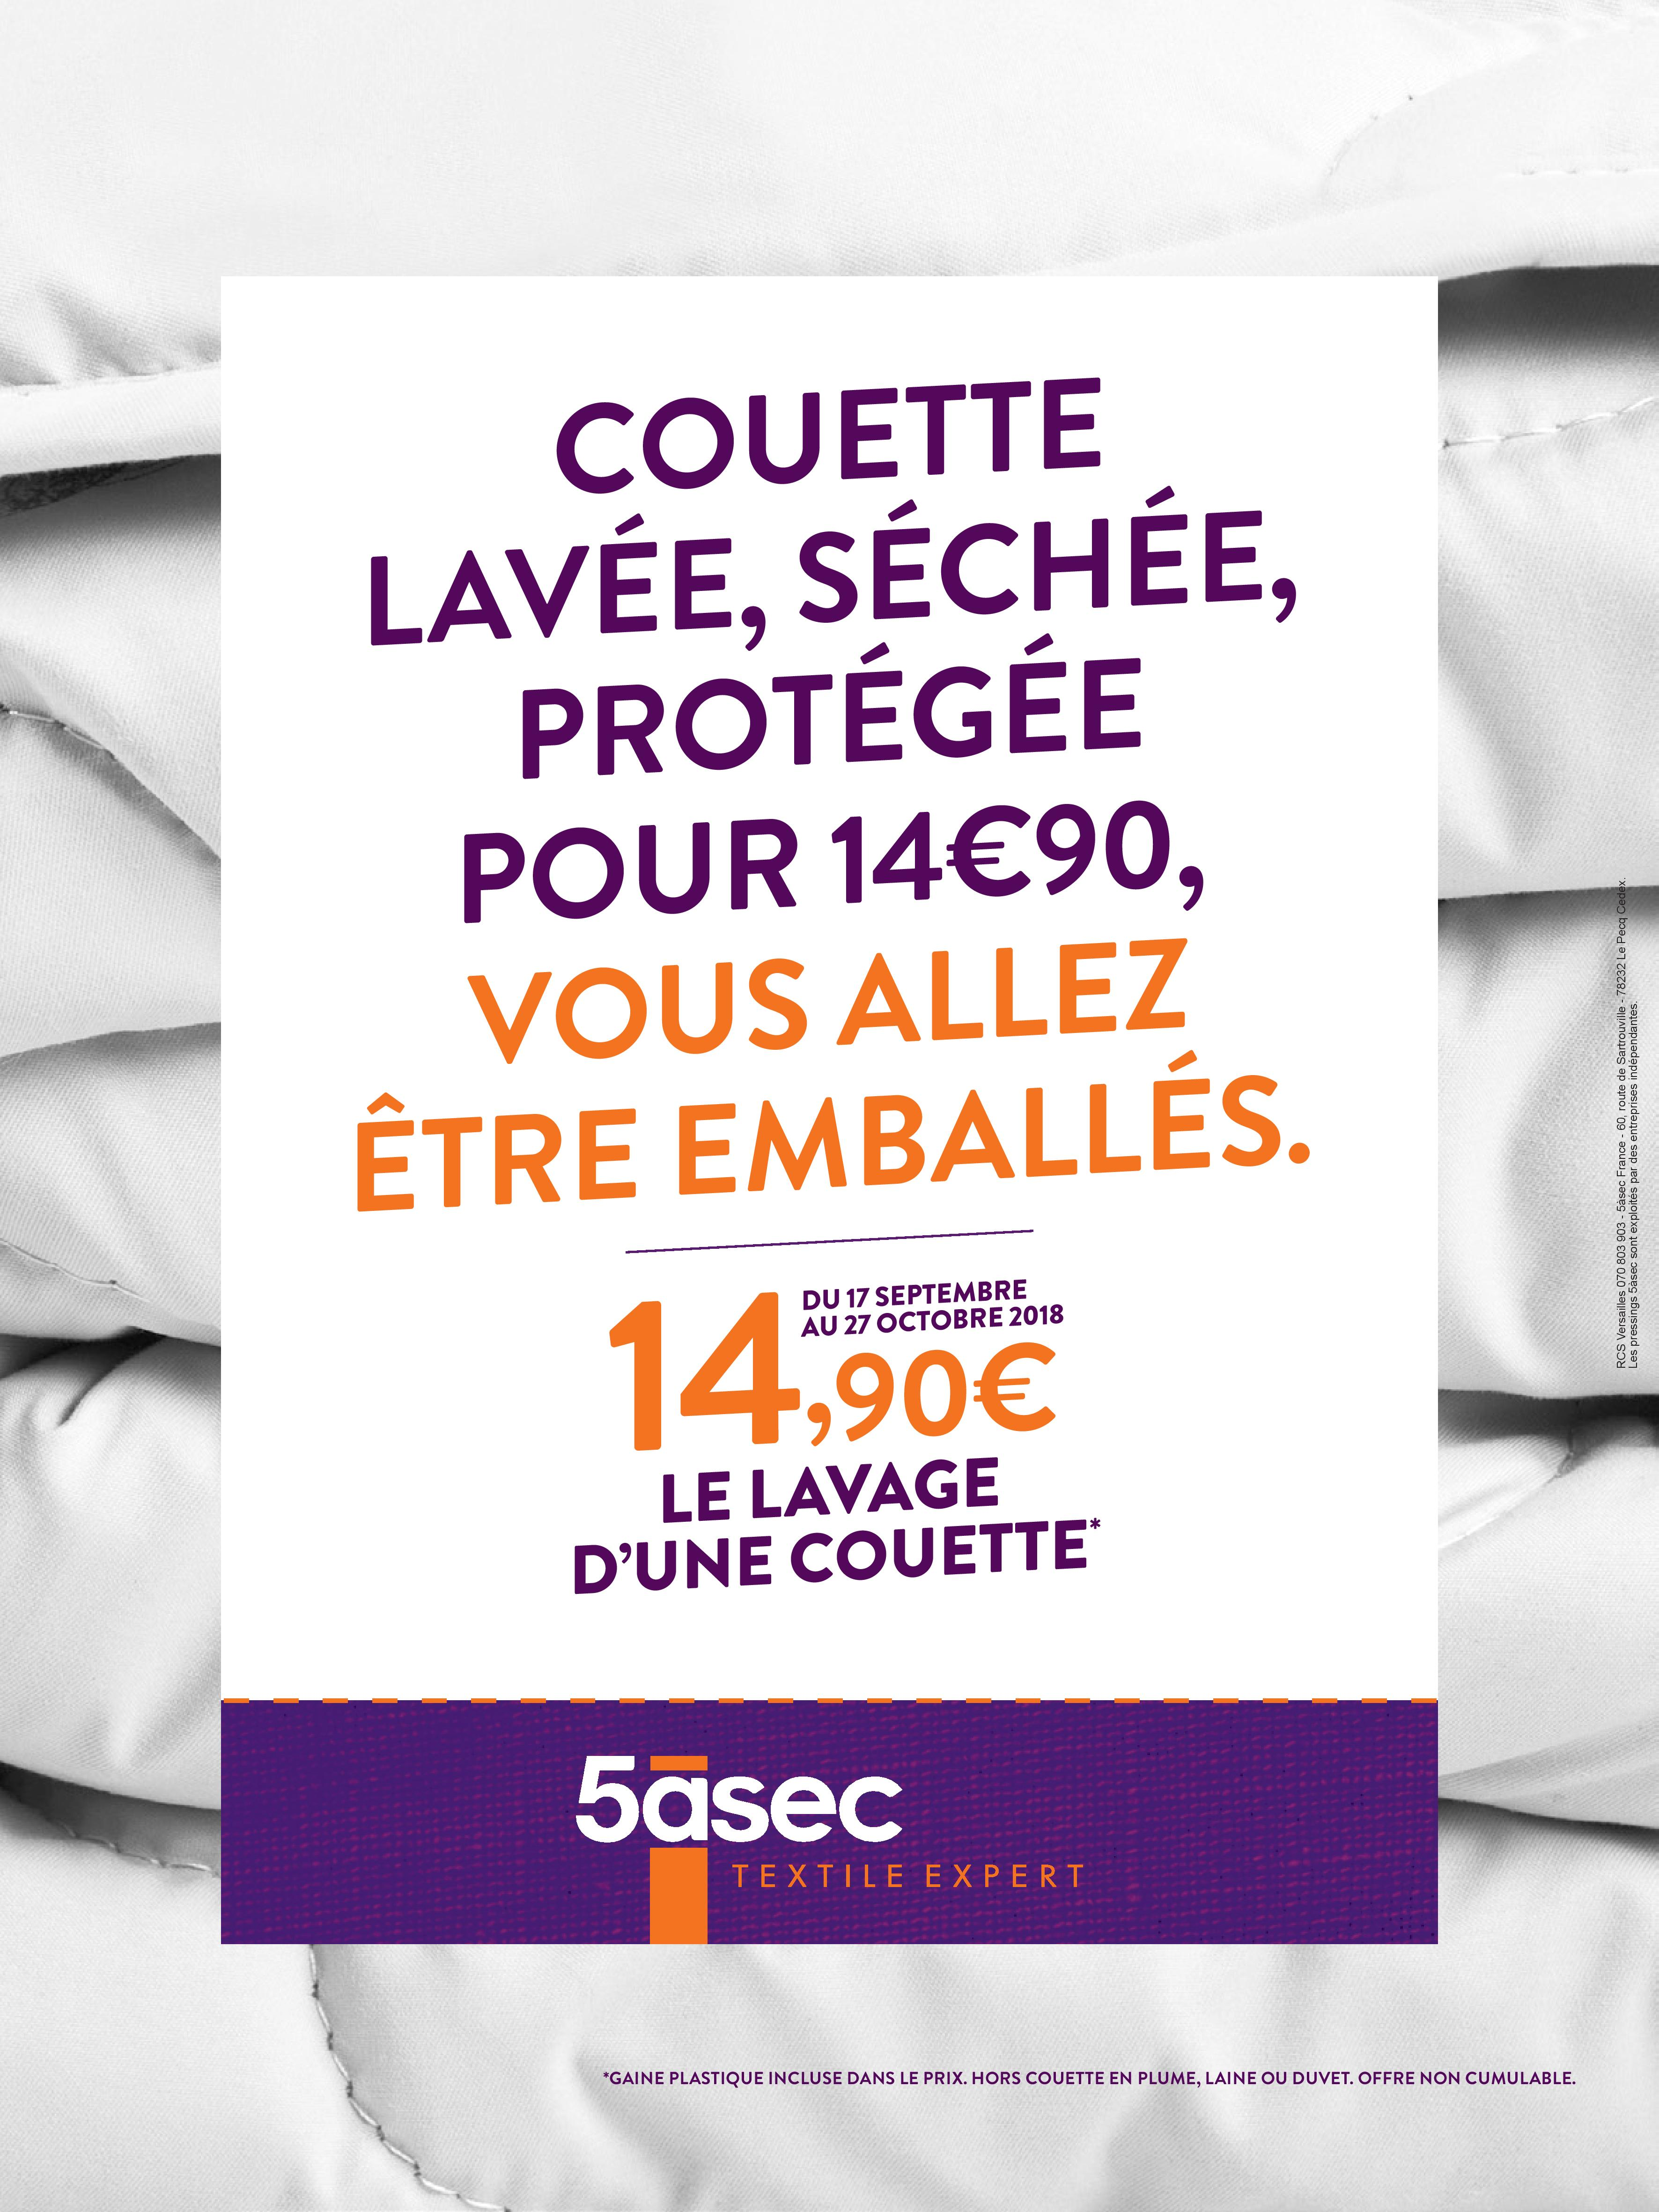 5asec-Couette-60x80-20081...